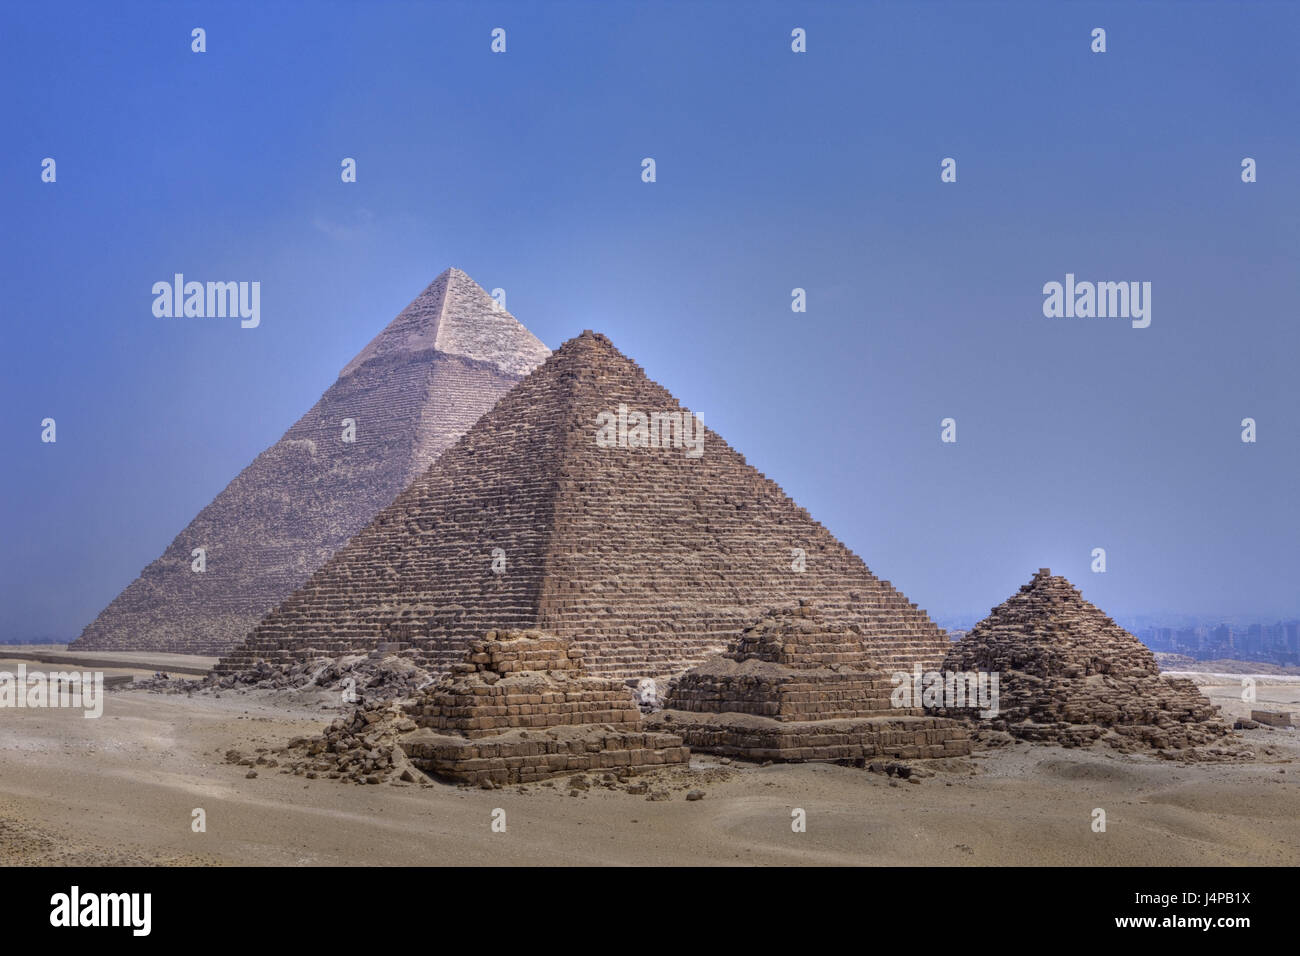 Pyramides de Gizeh, Egypte, Caire, Photo Stock